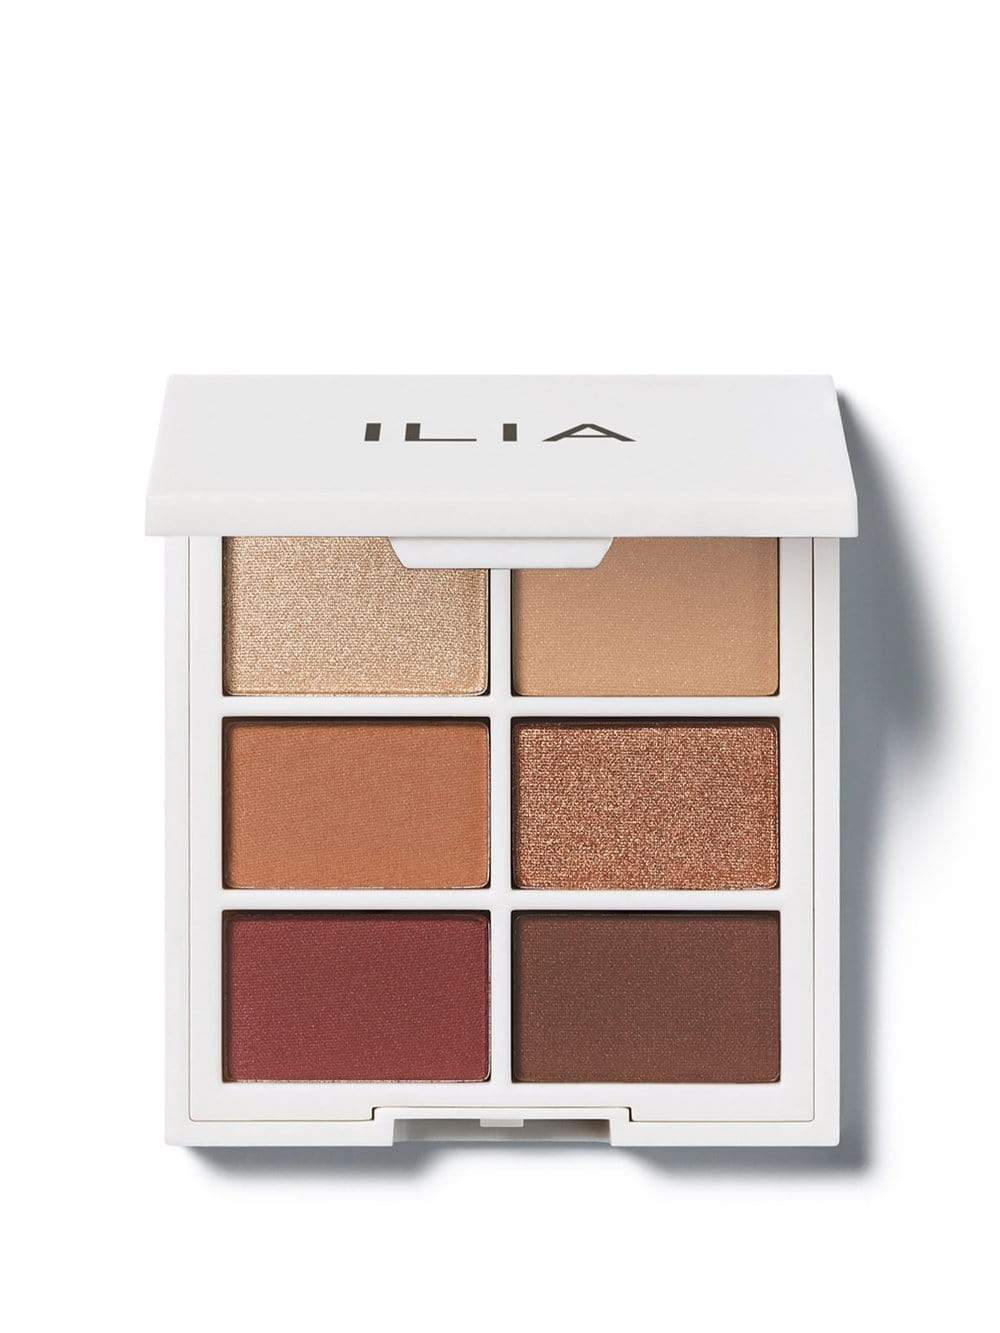 The Necessary Eyeshadow Palette - Warm Nude - The Natural Beauty Club